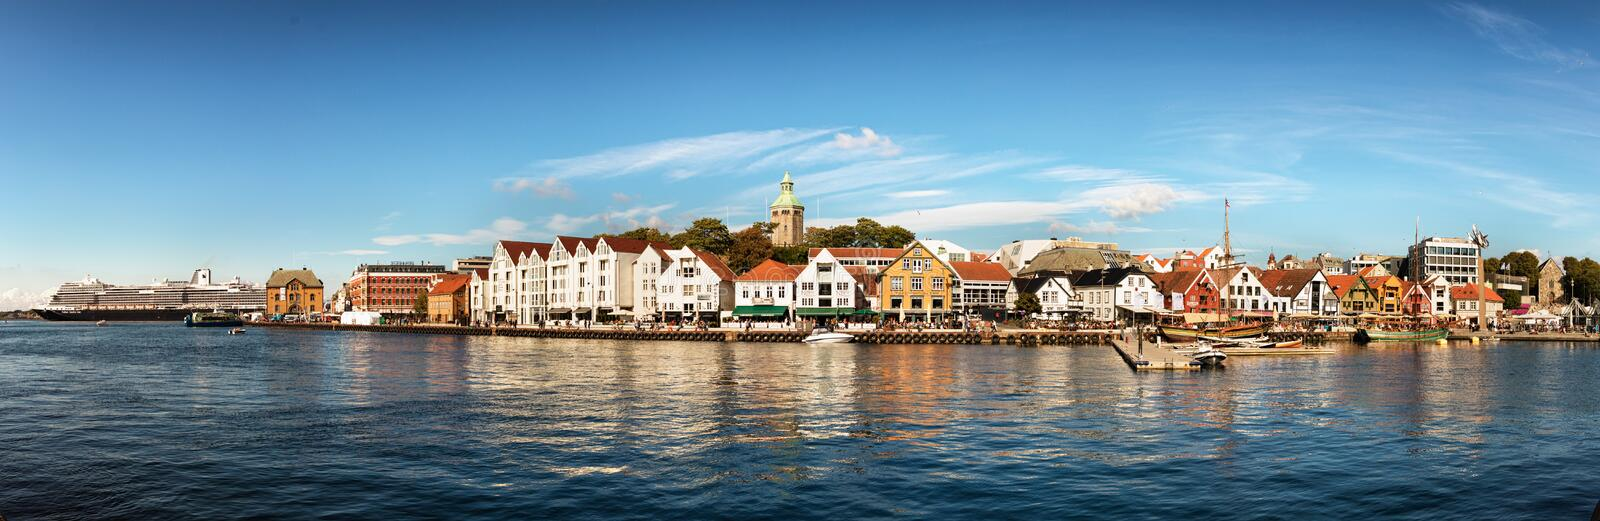 Panoramic view of the Port, marina and city center of Stavanger, Norway royalty free stock photos